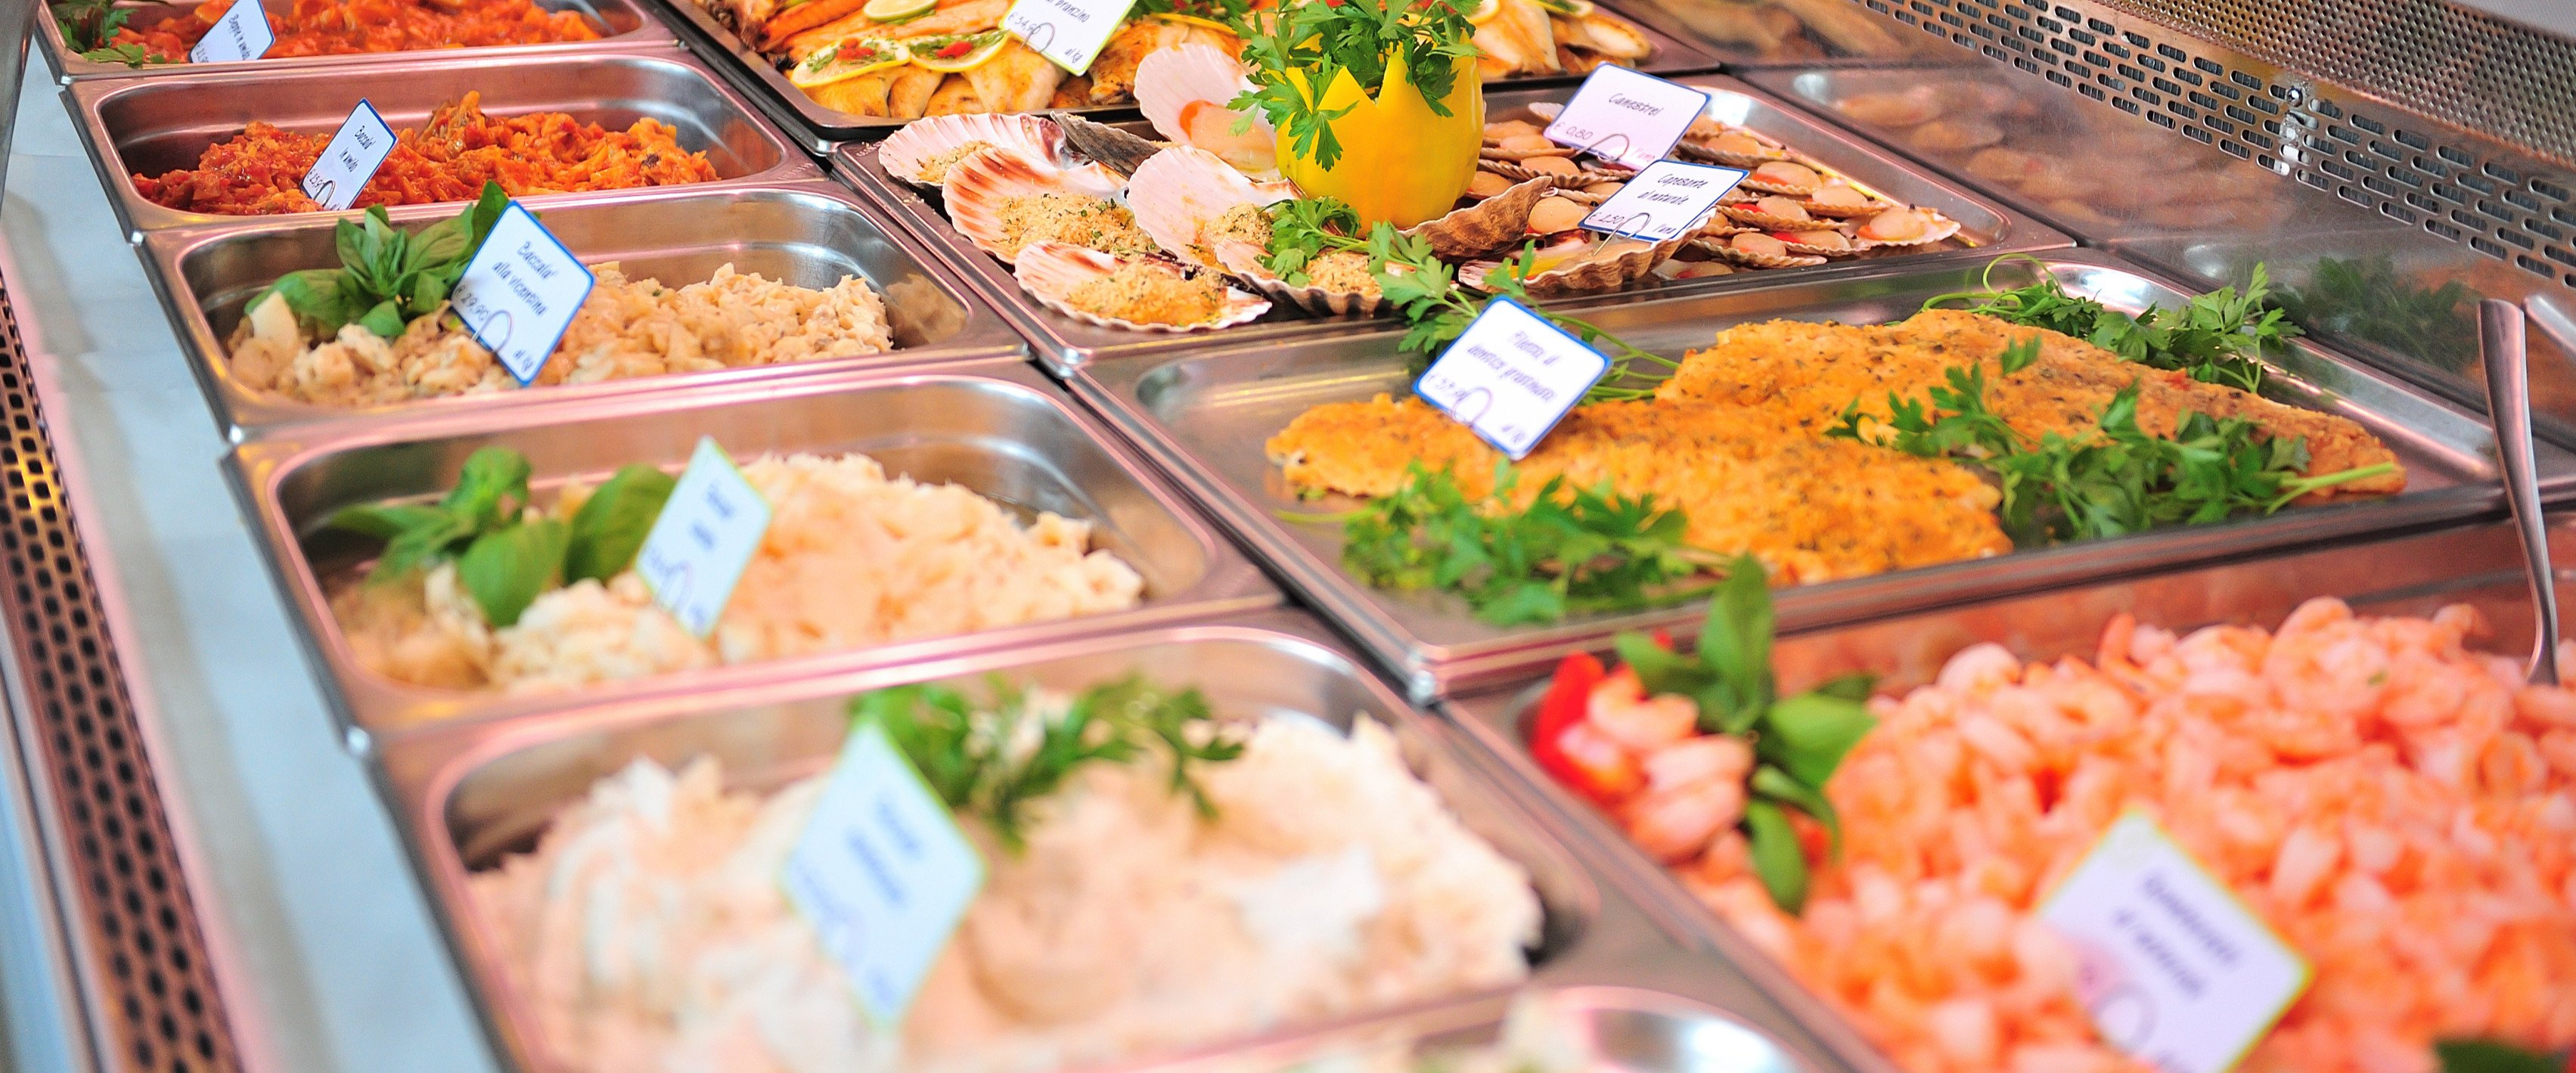 Expensive prepared foods in a lunch counter at a grocery store